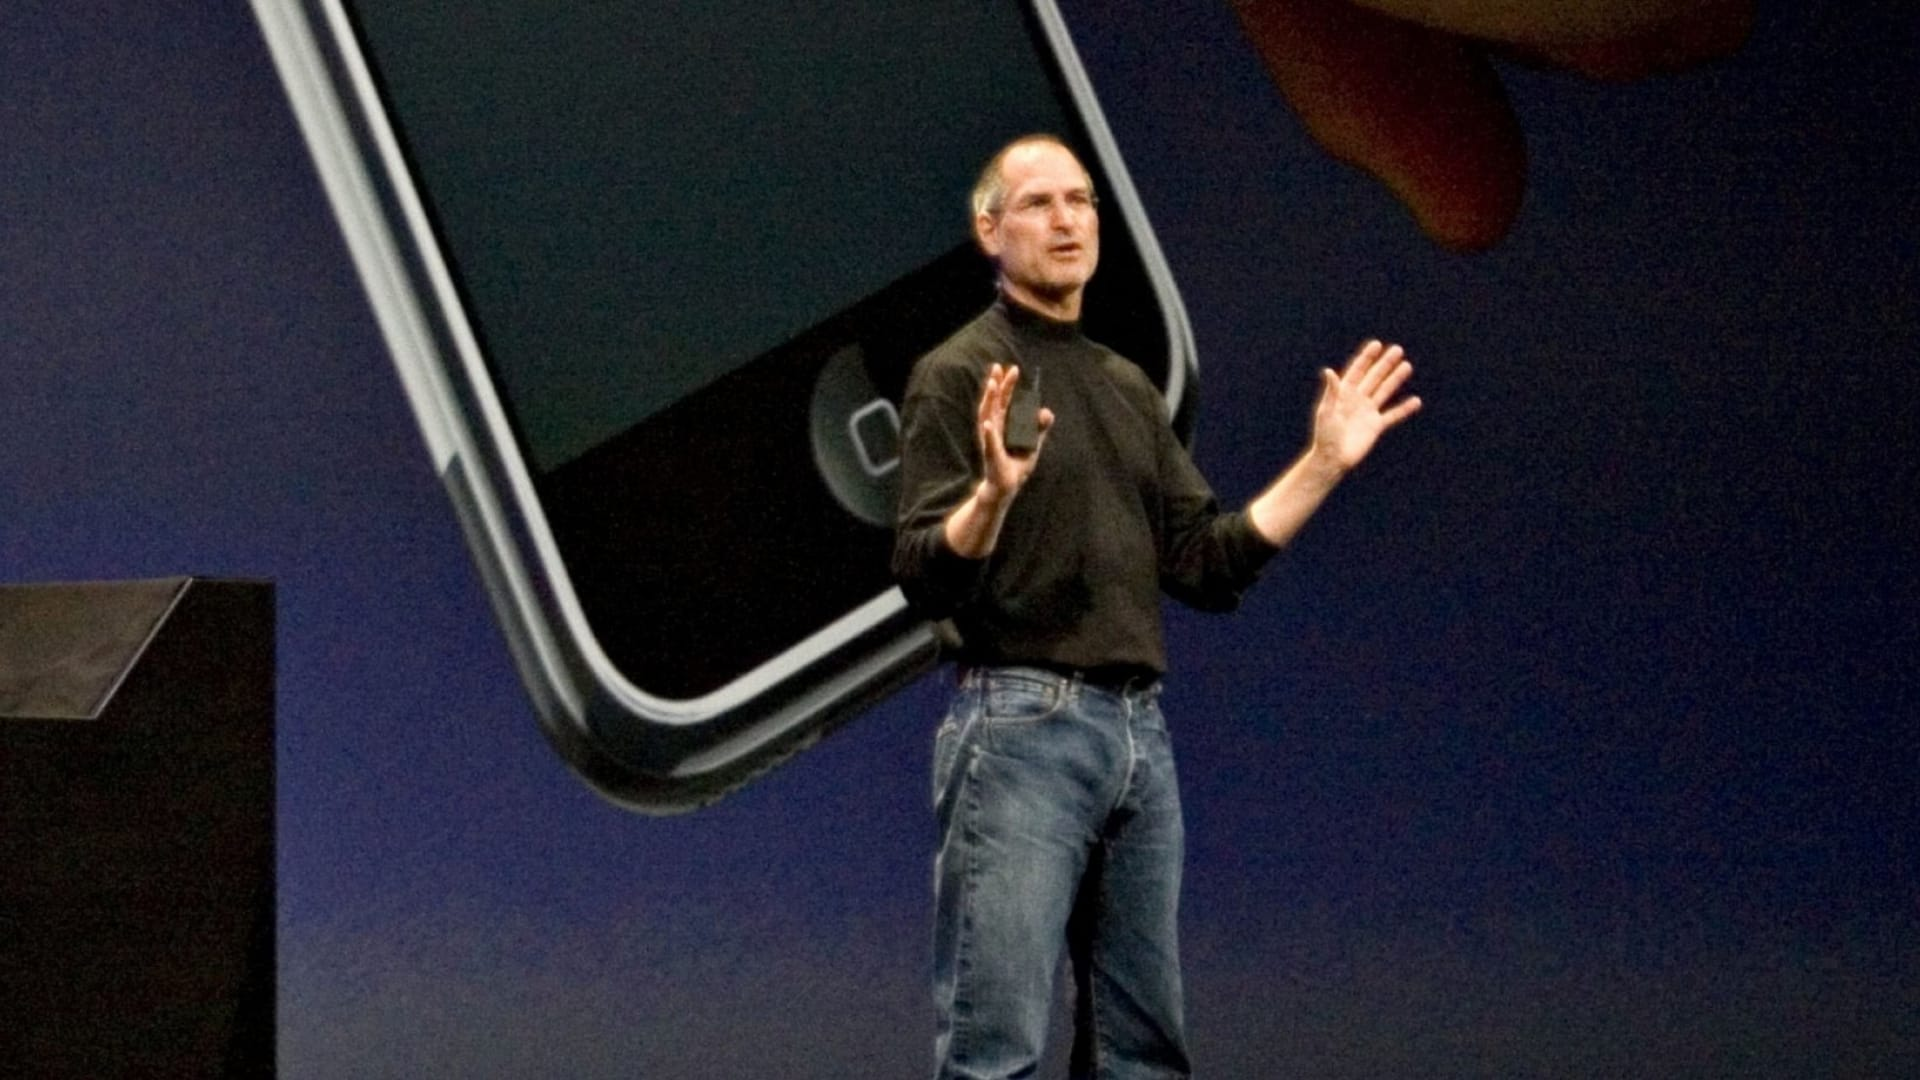 These Are the 4 Words Steve Jobs Used to Change Everything